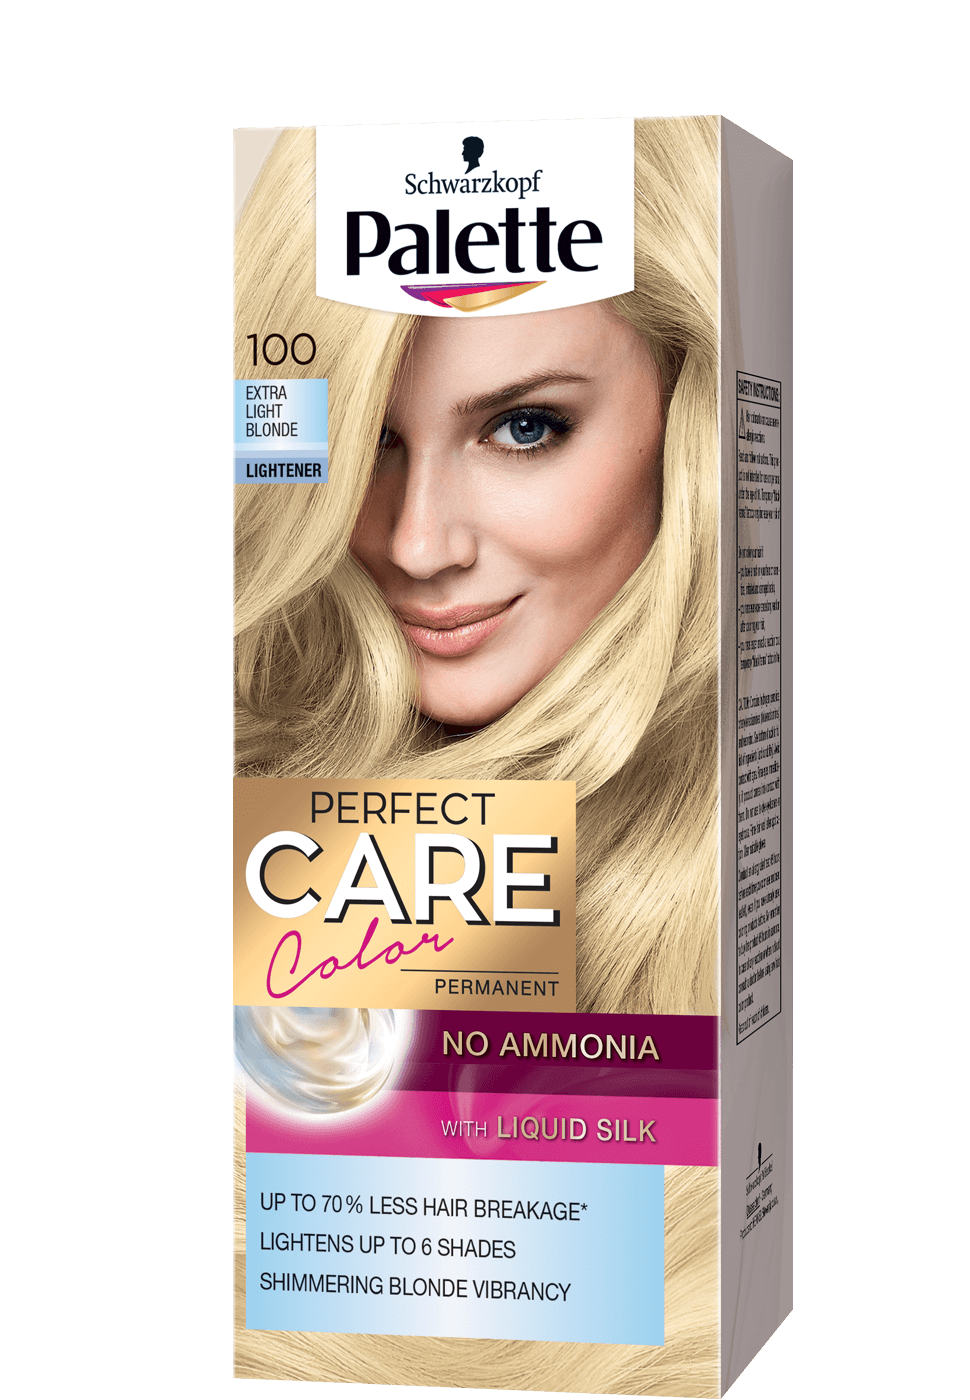 palette_com_perfect_care_lightener_100_extra_light_blonde_970x1400